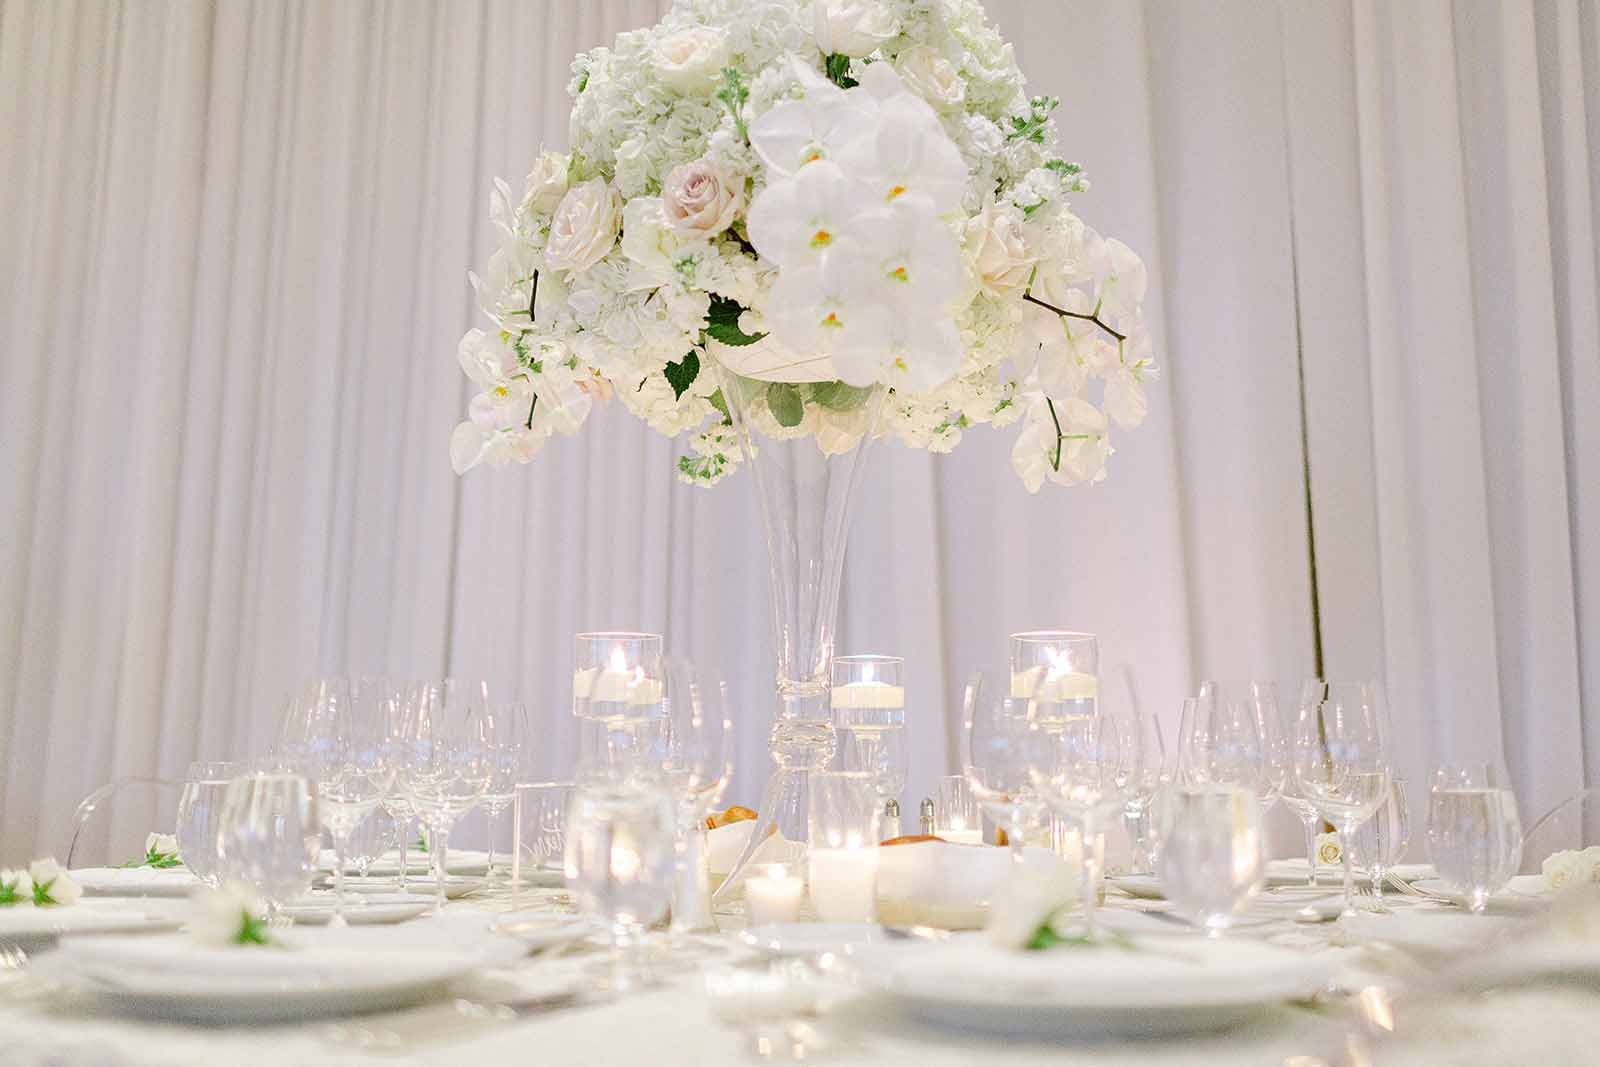 Tall white floral centerpiece with white orchids and stemmed hurricane candles surrounding it designed by Flora Nova Design Seattle